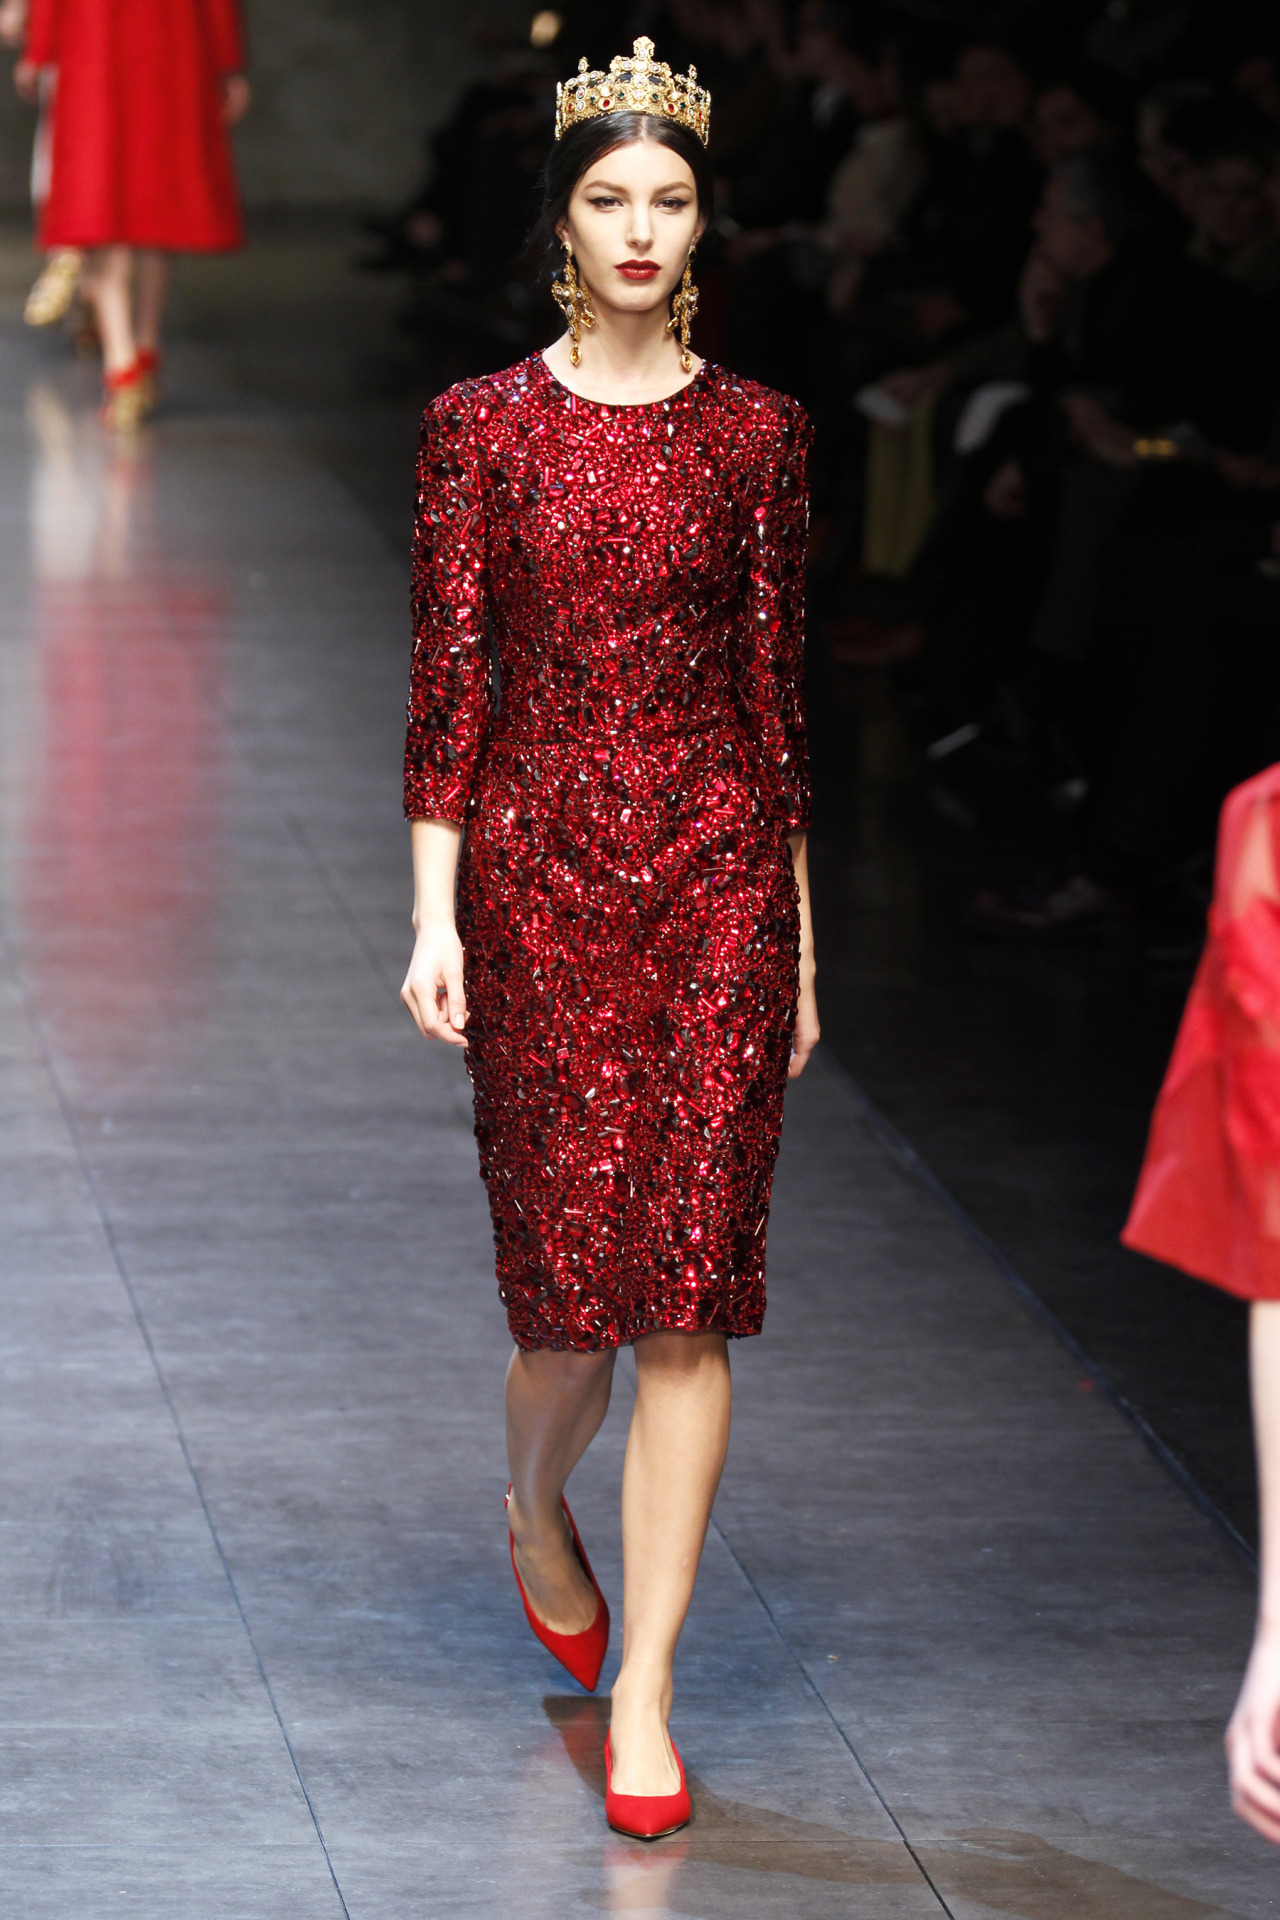 flarefashion:  Dolce & Gabbana - Fall 2013 / Photographer: Anthea Simms See the season's headlining trends at Milan Fashion Week now.